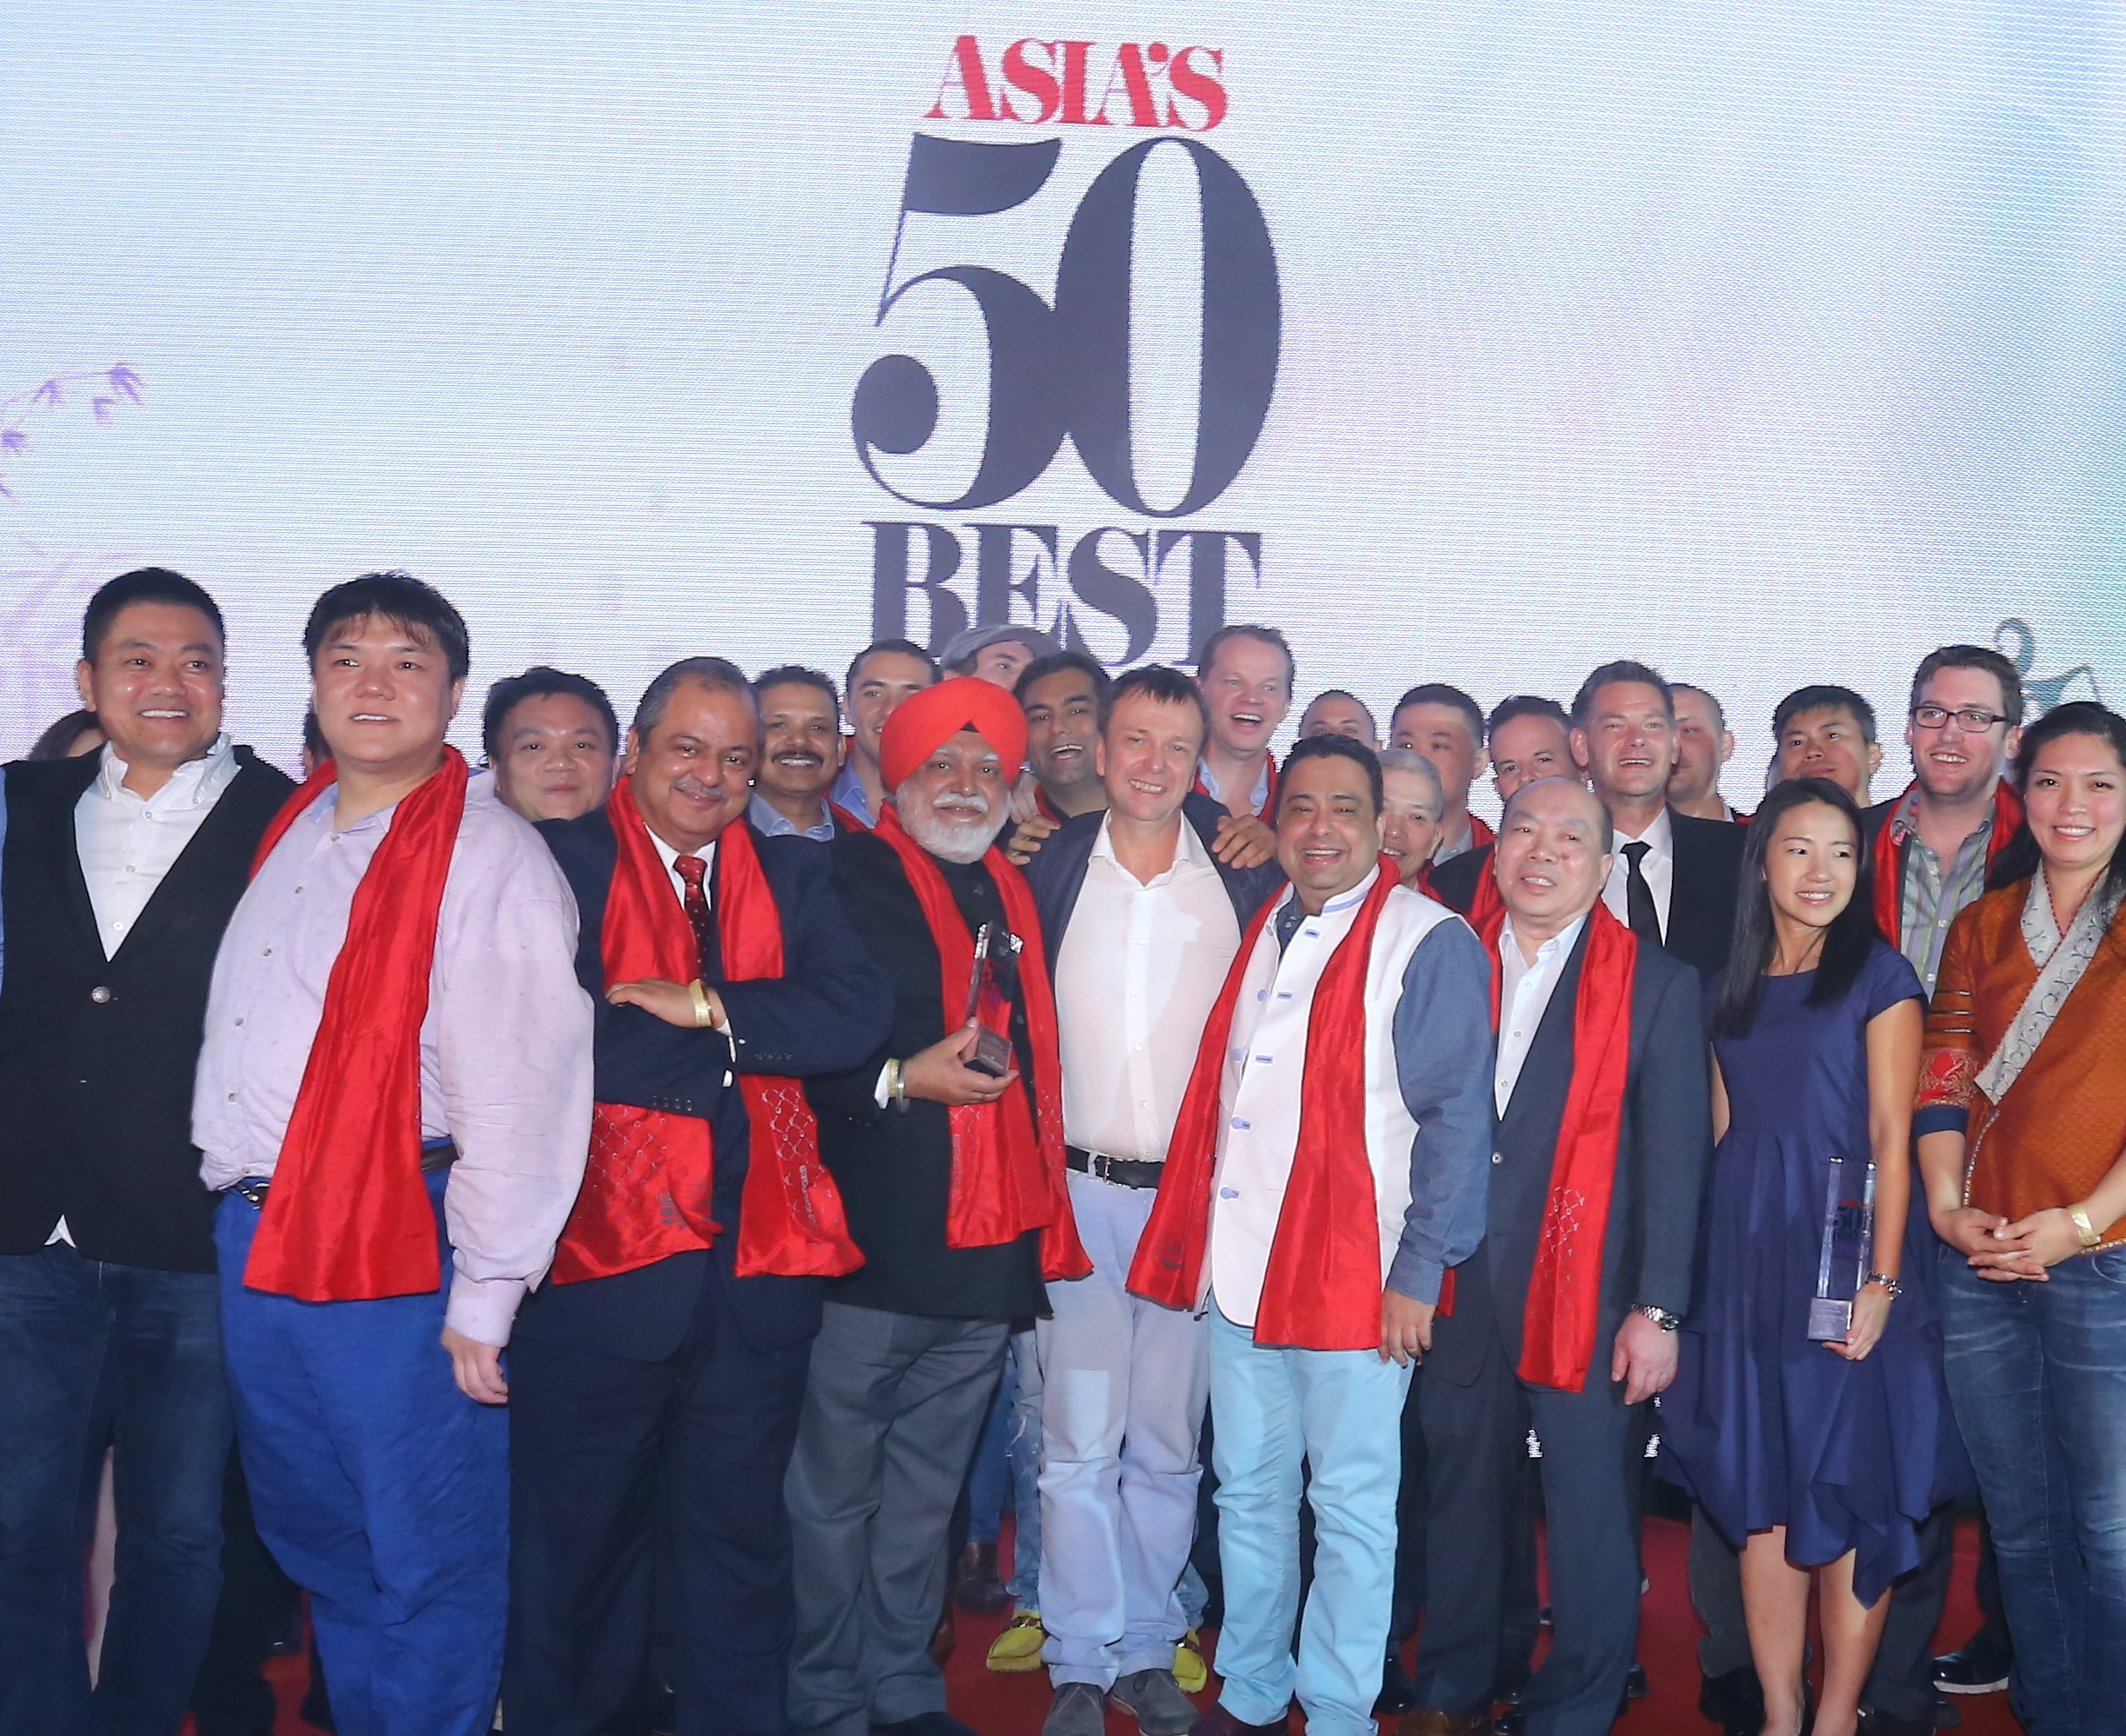 Asia's 50 Best: 10 Chefs to Watch